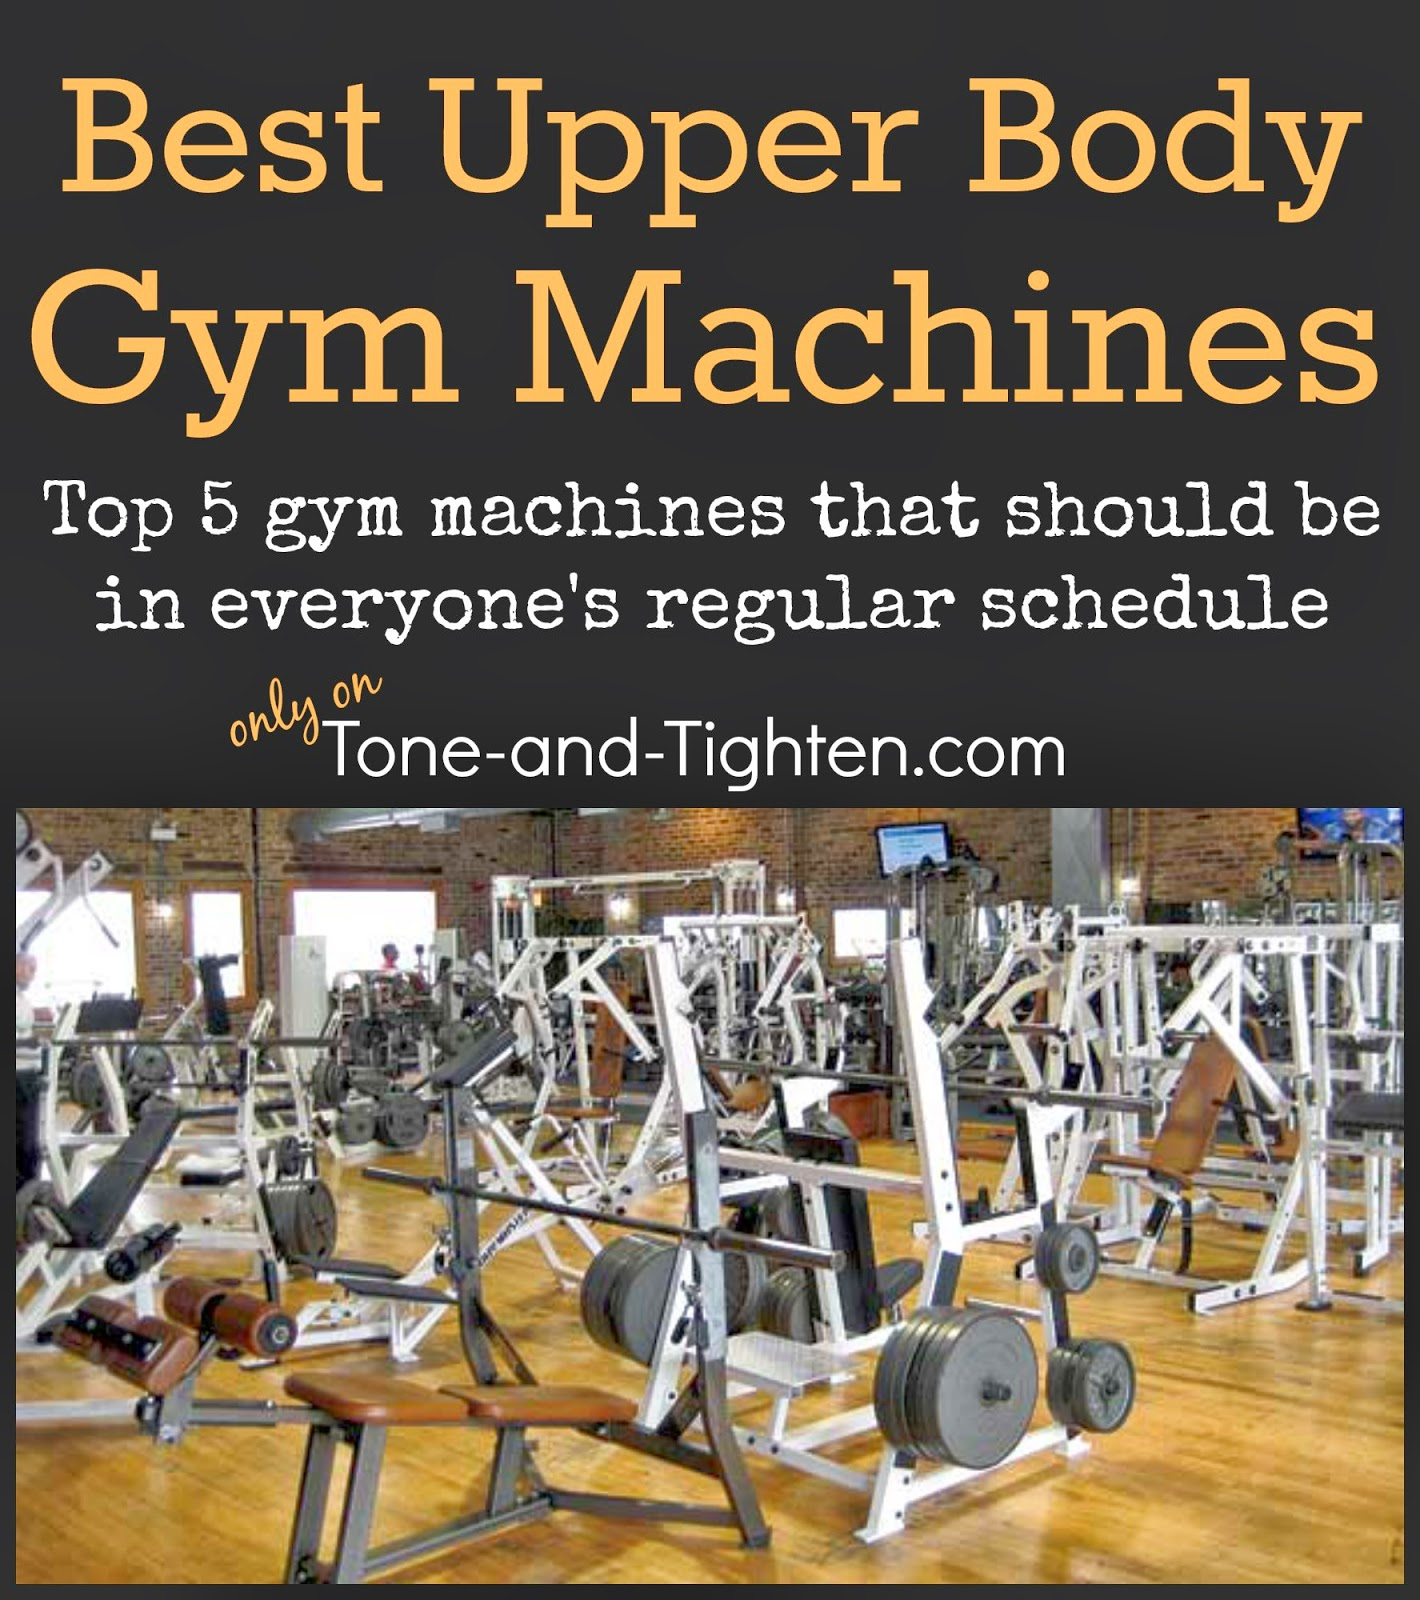 Top Exercise Equipment: Get Toned, Sculpted, Strong Legs Now! Best Gym Machines